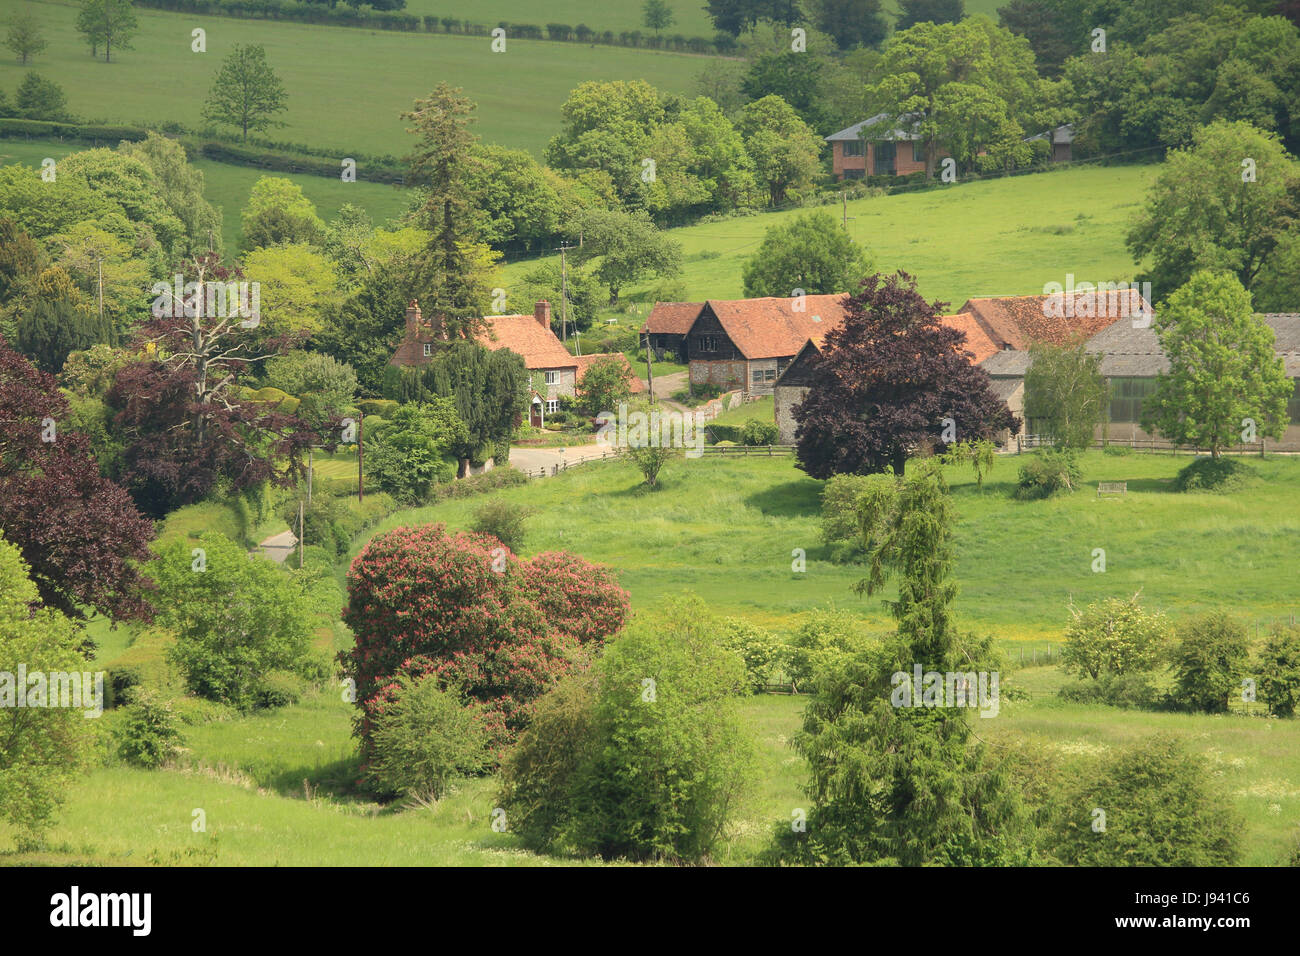 An English Rural Landscape in the Hambleden Valley in the Chiltern Hills - Stock Image